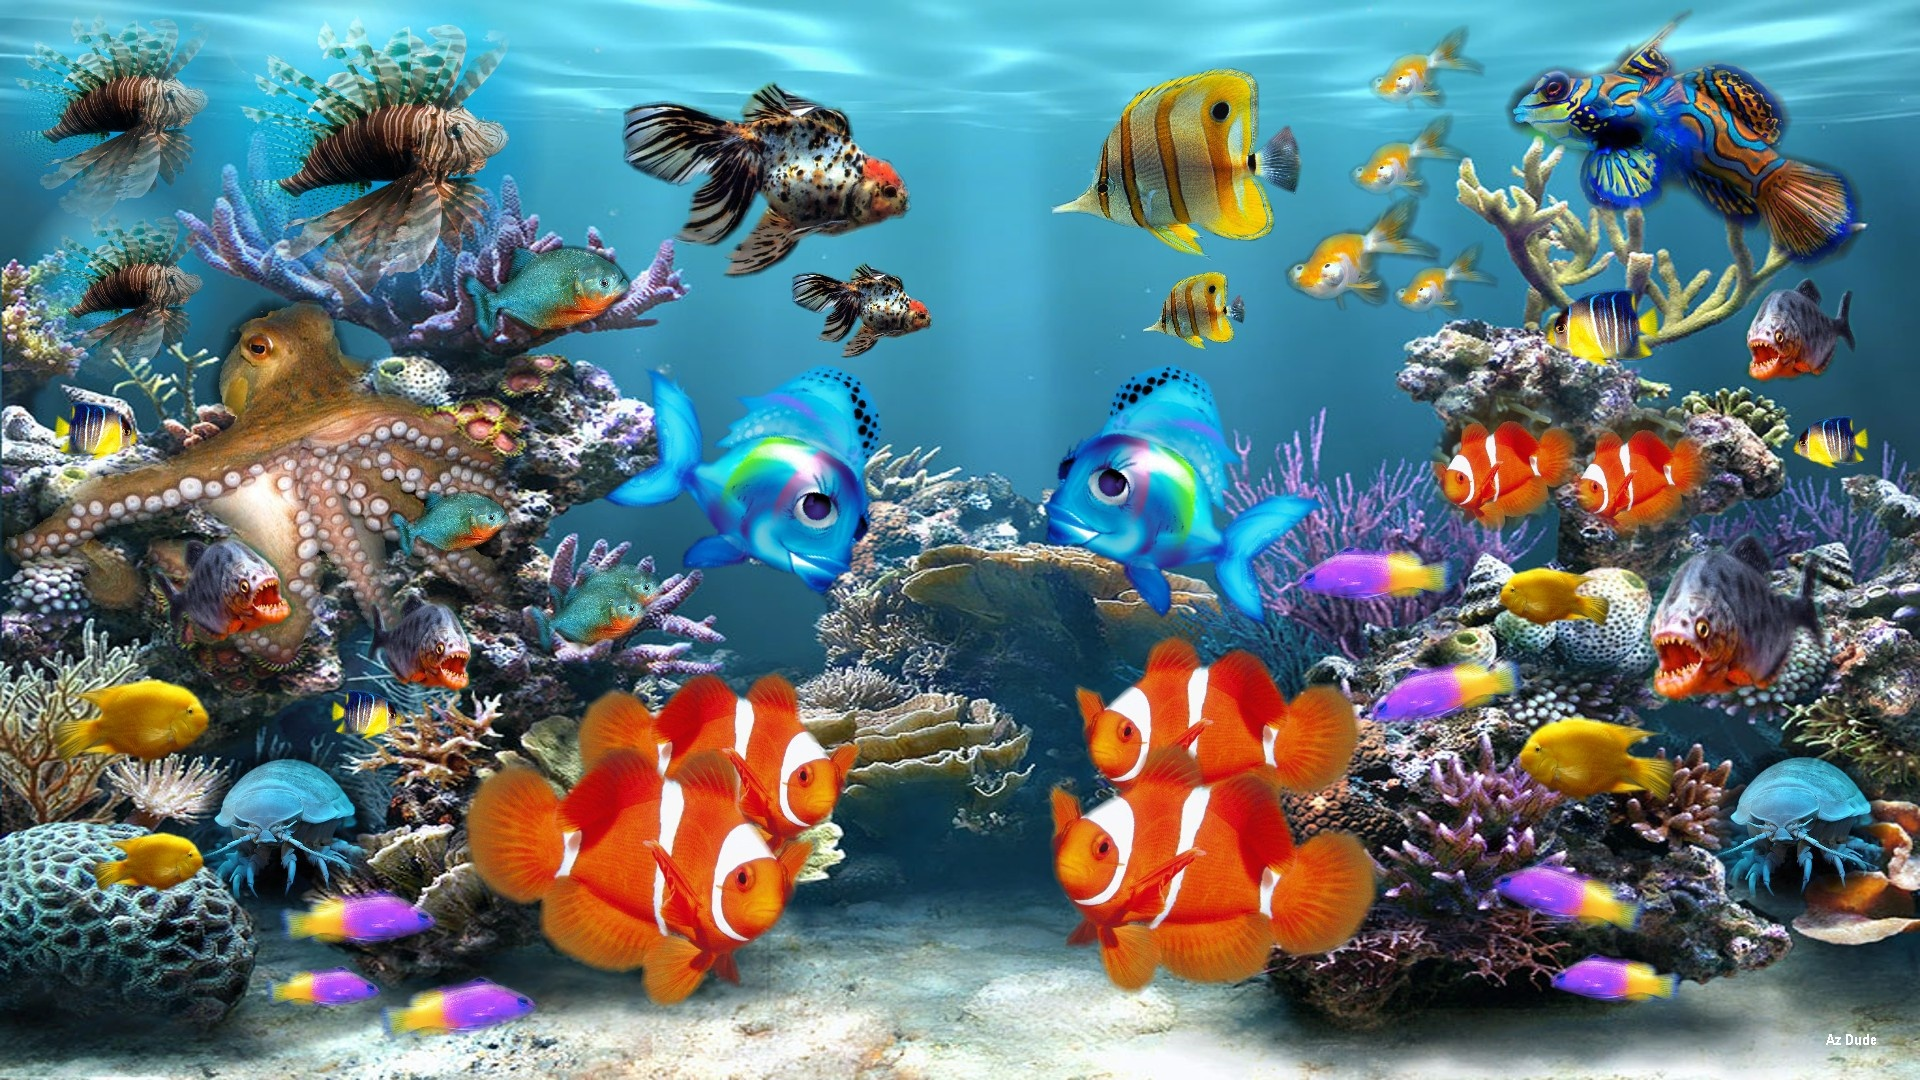 Fonds dcran Aquarium PC et Tablettes iPad etc 1920x1080